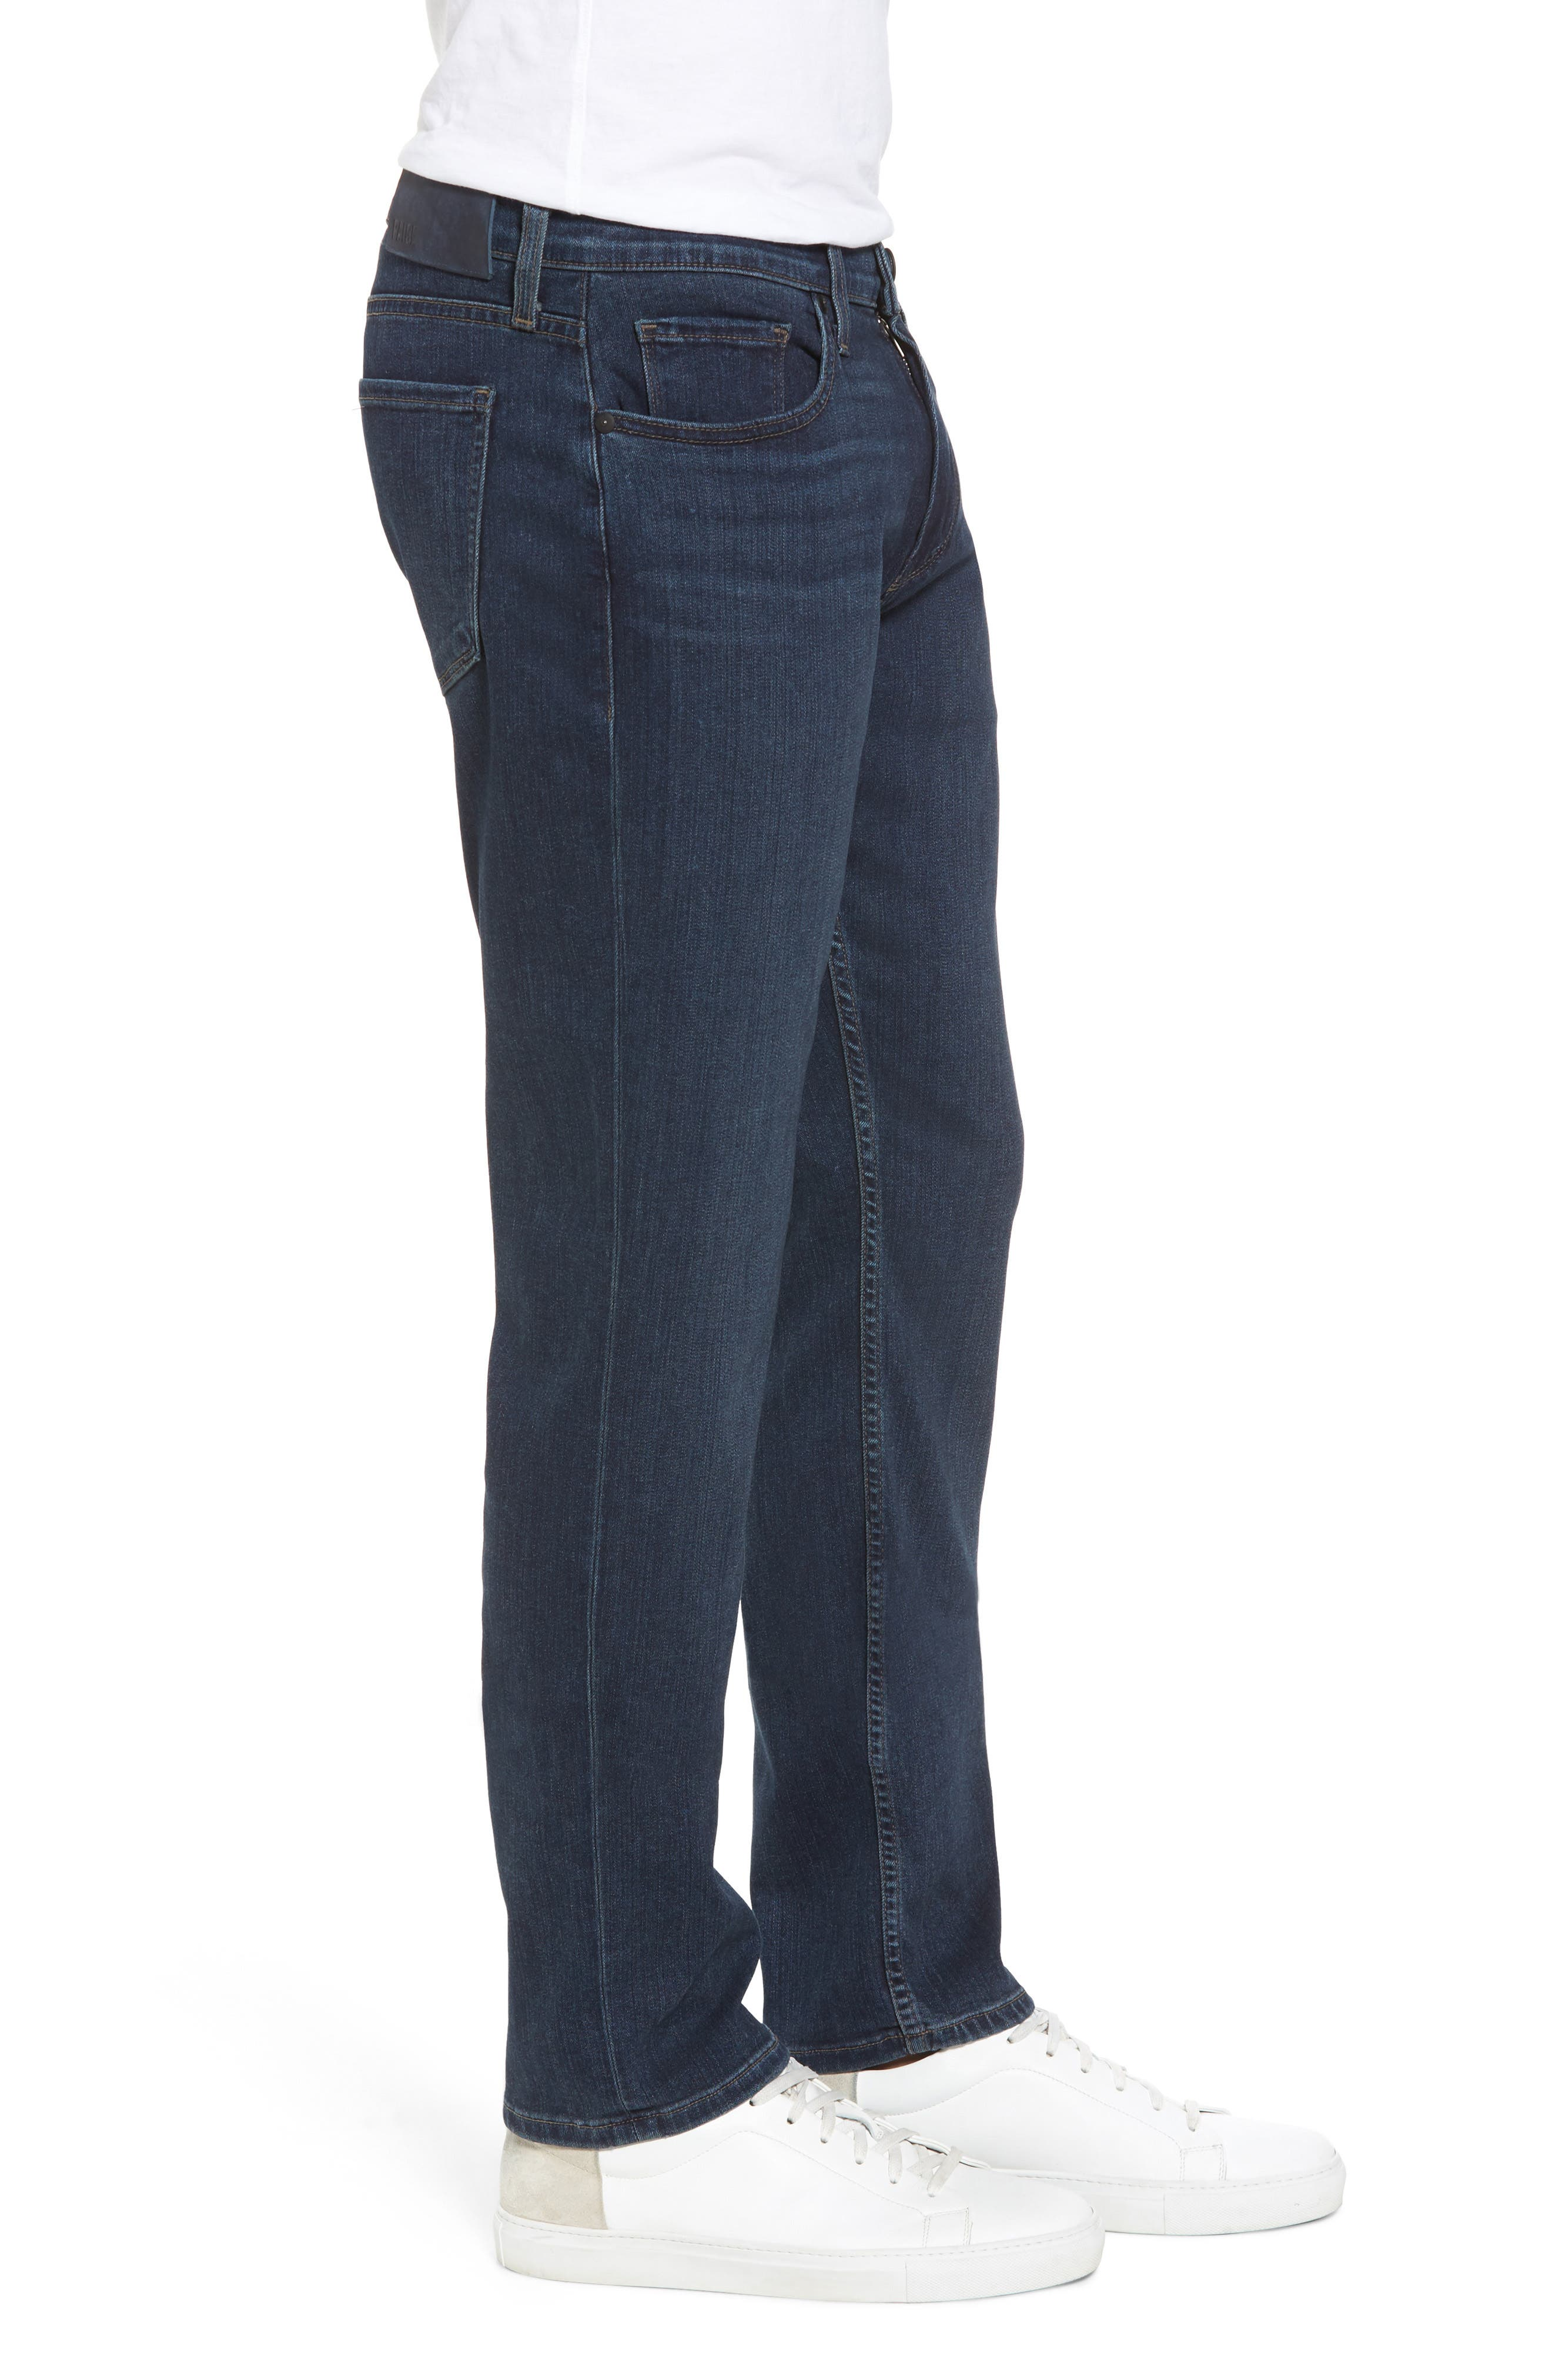 Transcend - Federal Slim Straight Fit Jeans,                             Alternate thumbnail 3, color,                             400